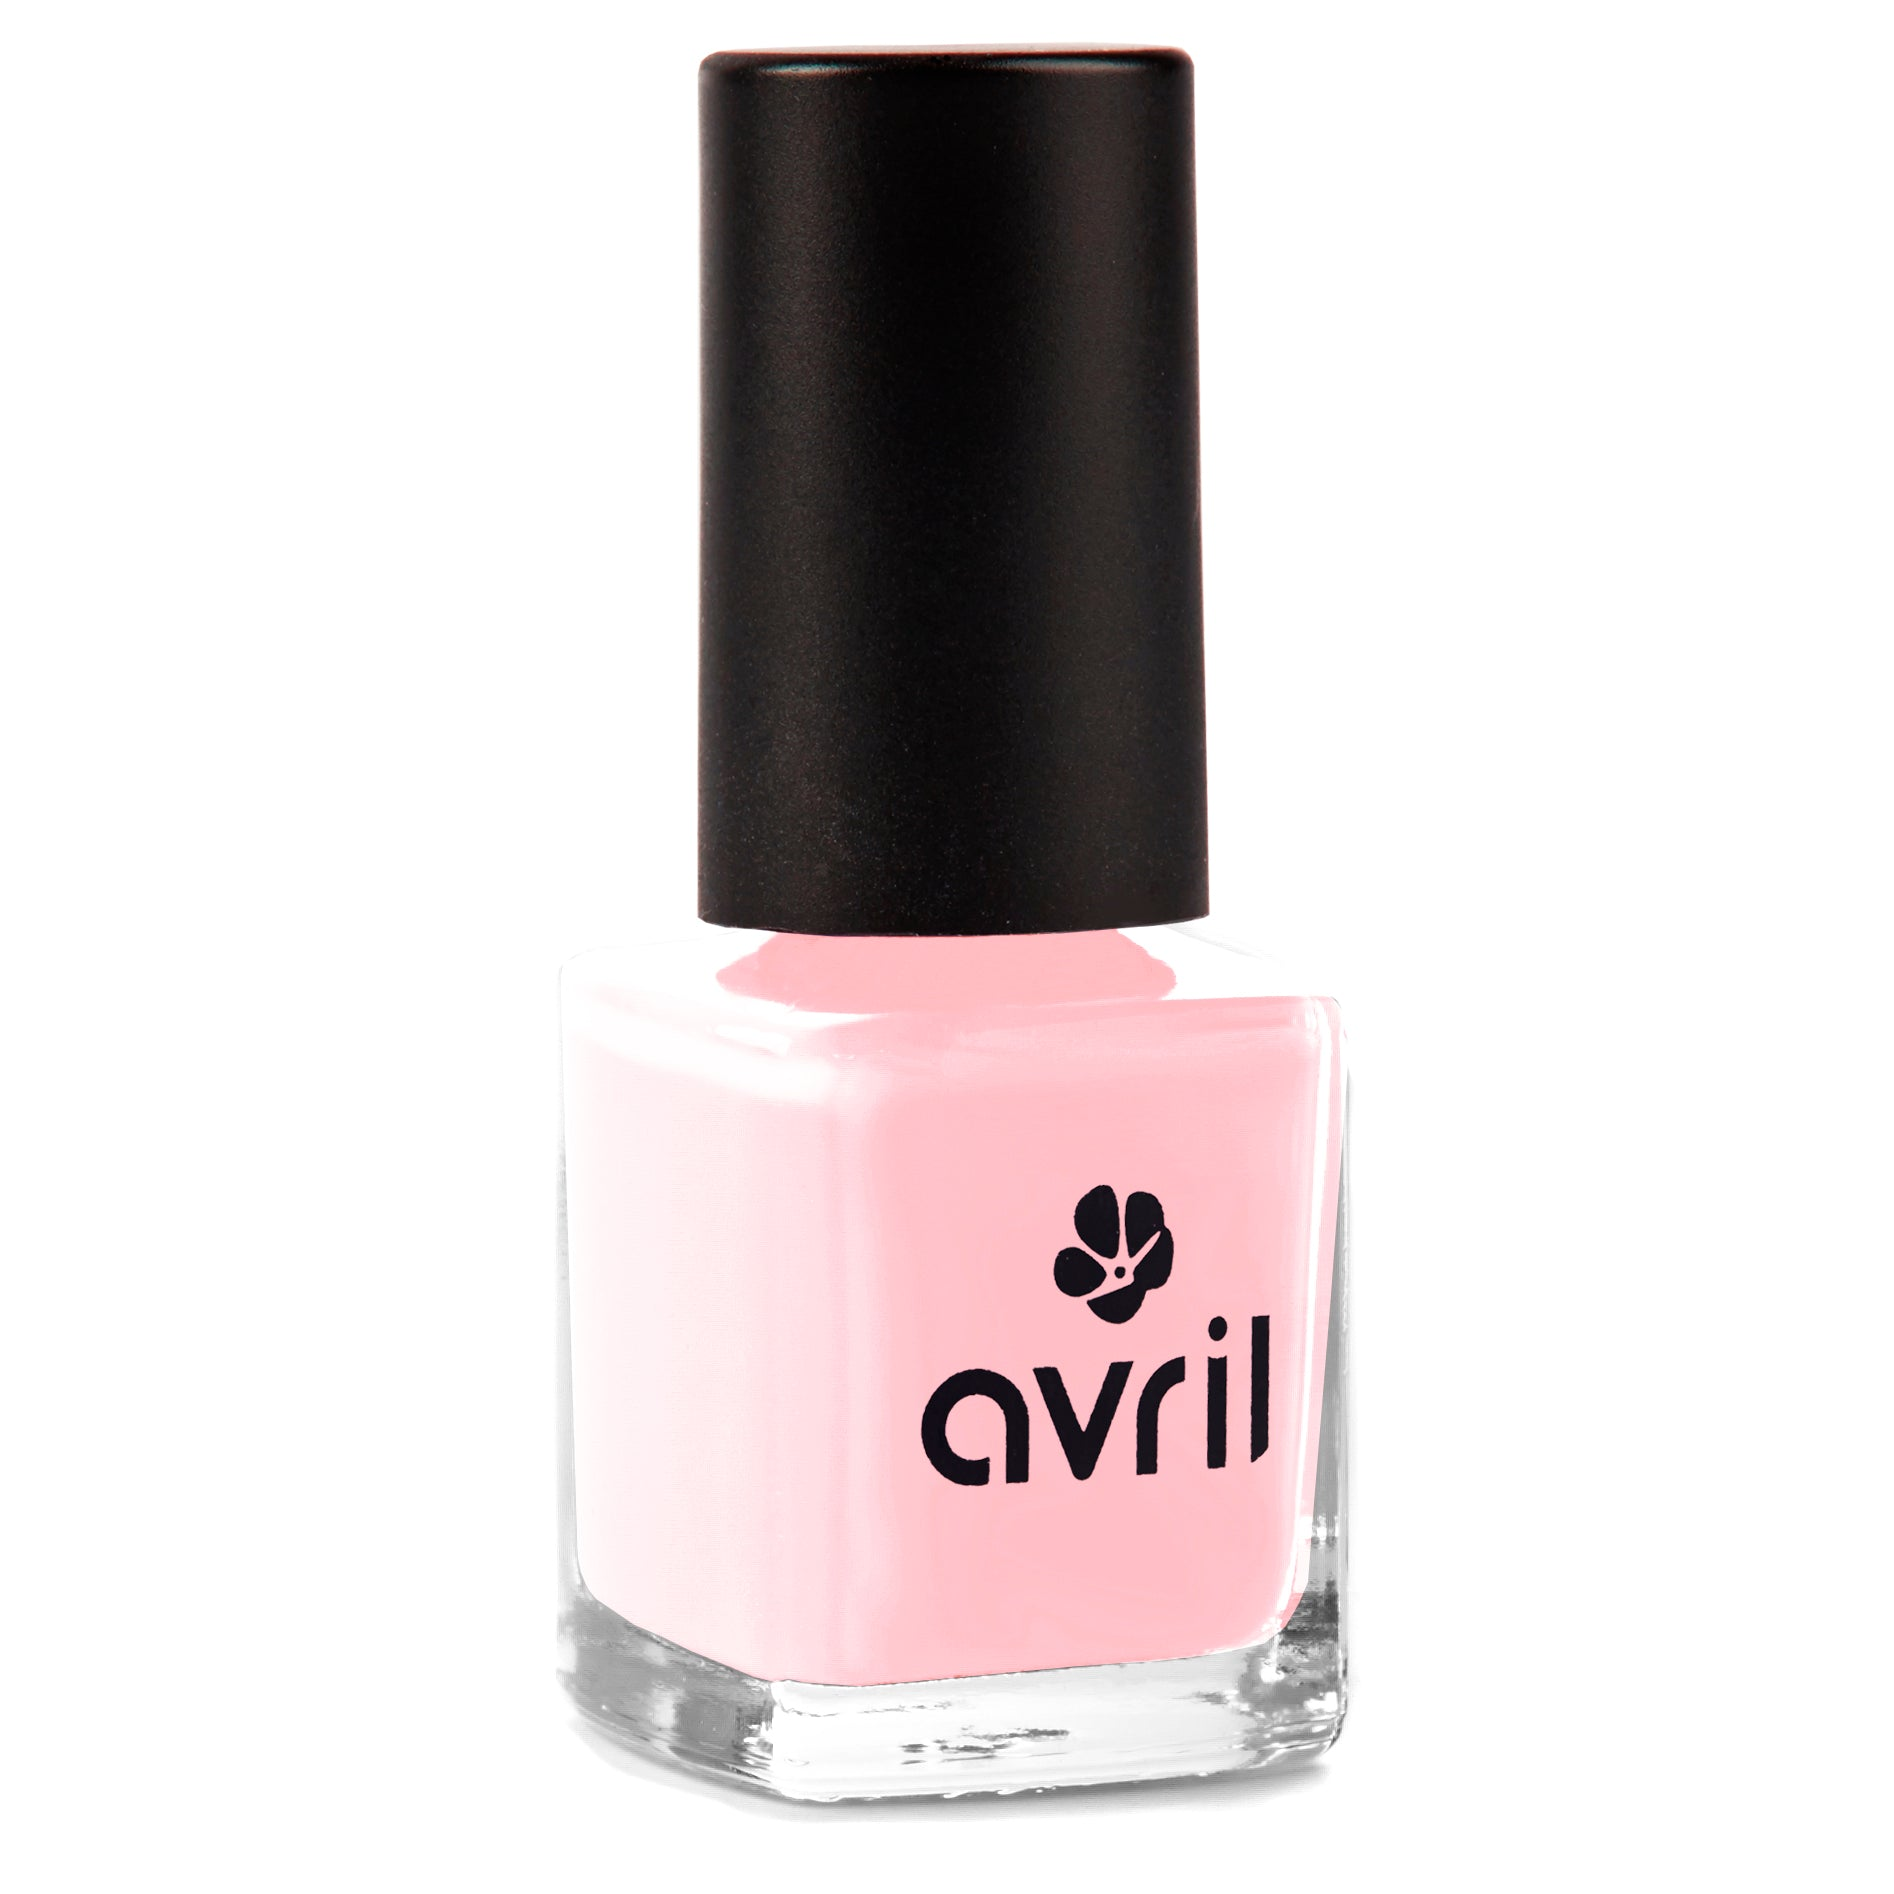 AVRIL 指甲油 (French Rose N° 88) | AVRIL Nail Polish (French Rose N° 88)